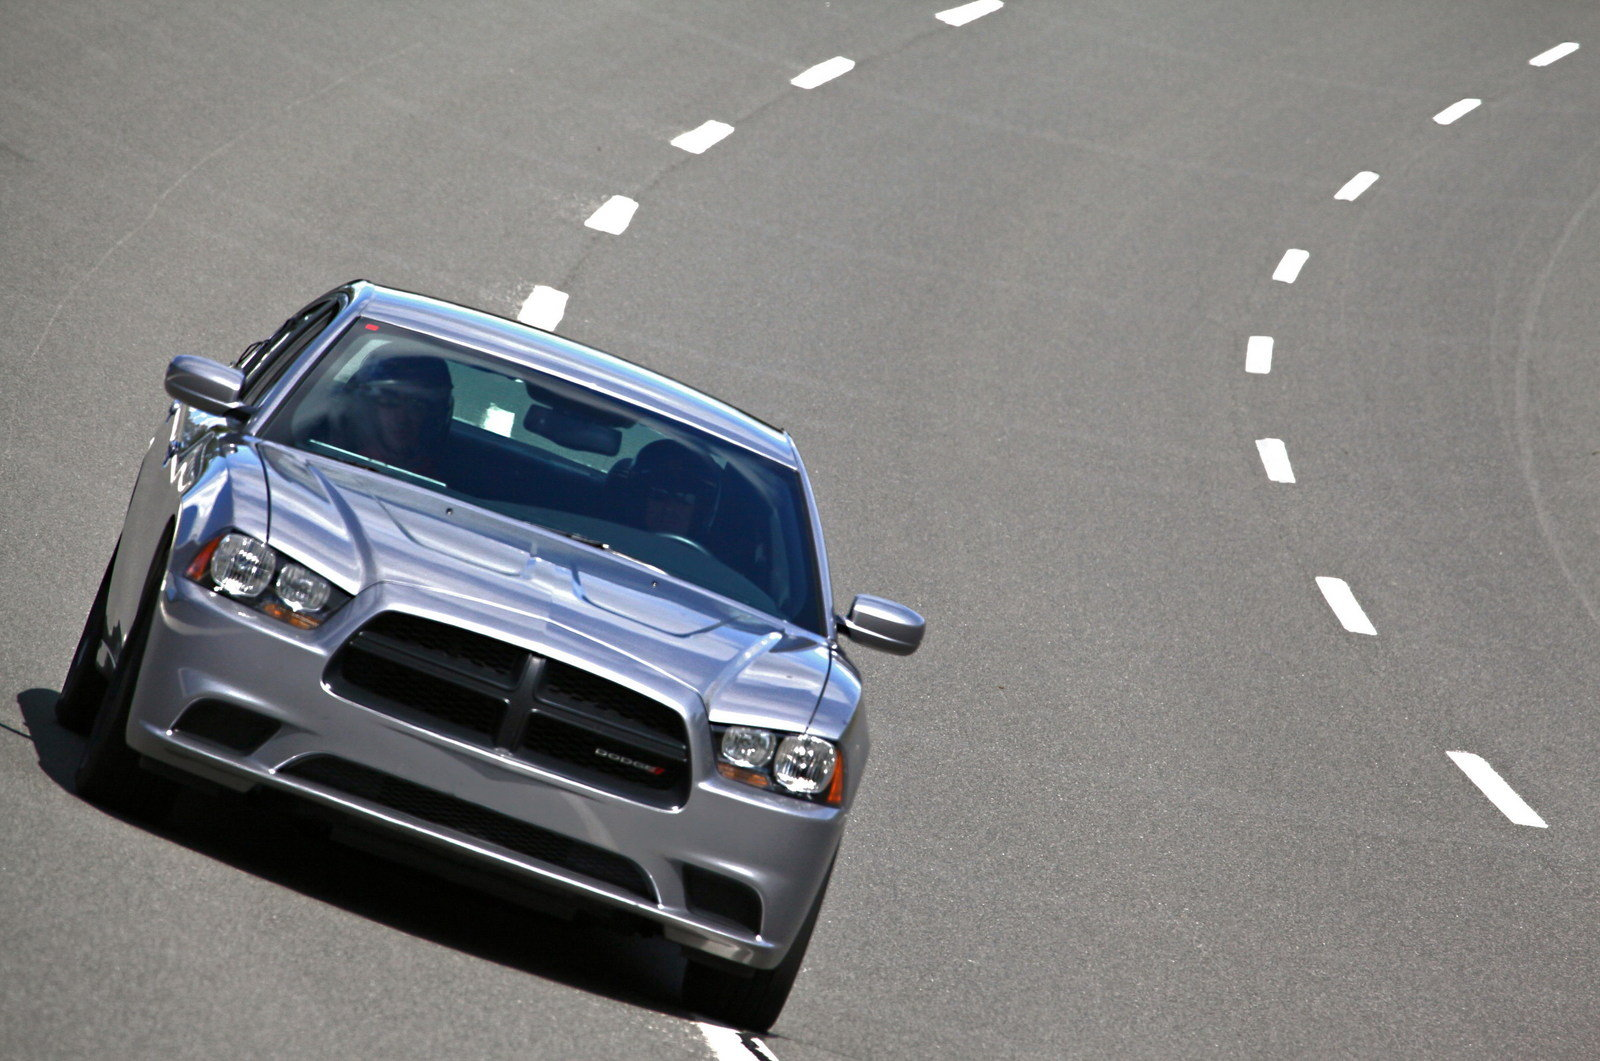 2014 Dodge Charger Pursuit Dominates The Michigan State